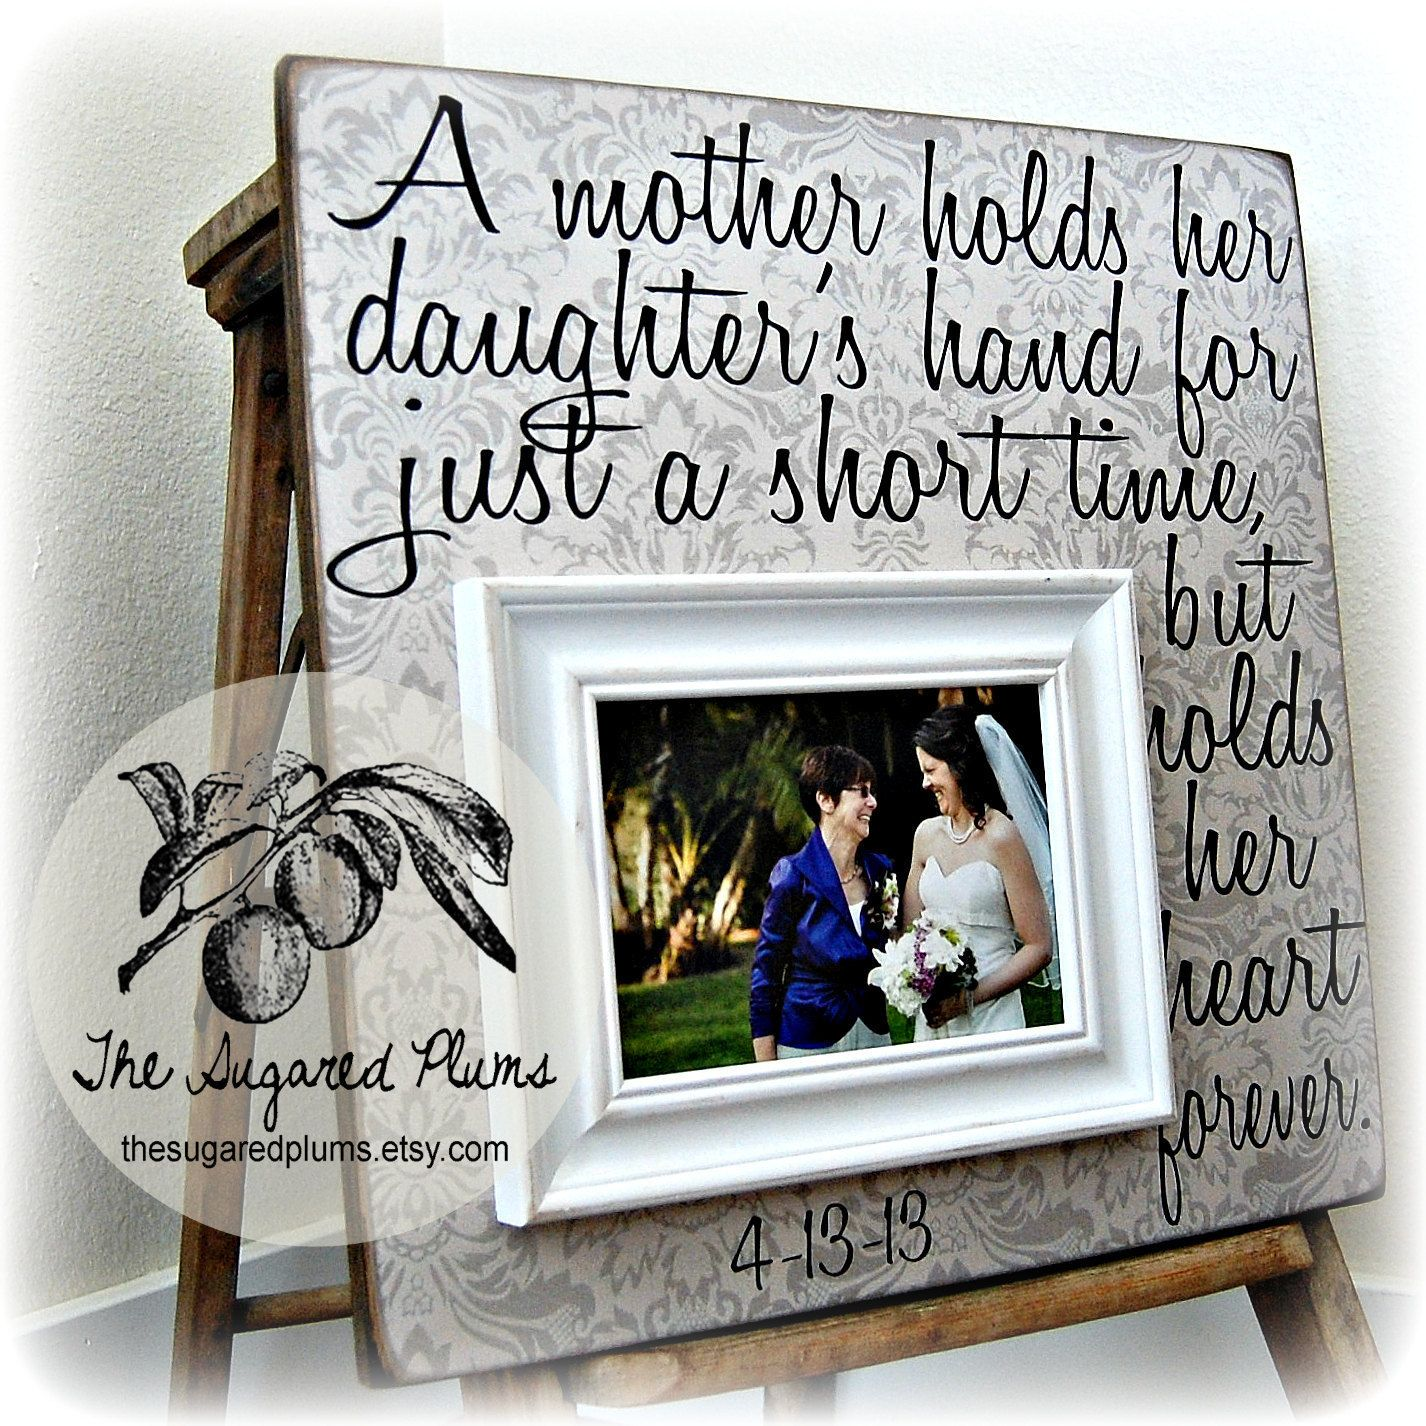 Wedding Gift For Bride From Mother: Card From Mother To Daughter On Daughter's Bridal Shower